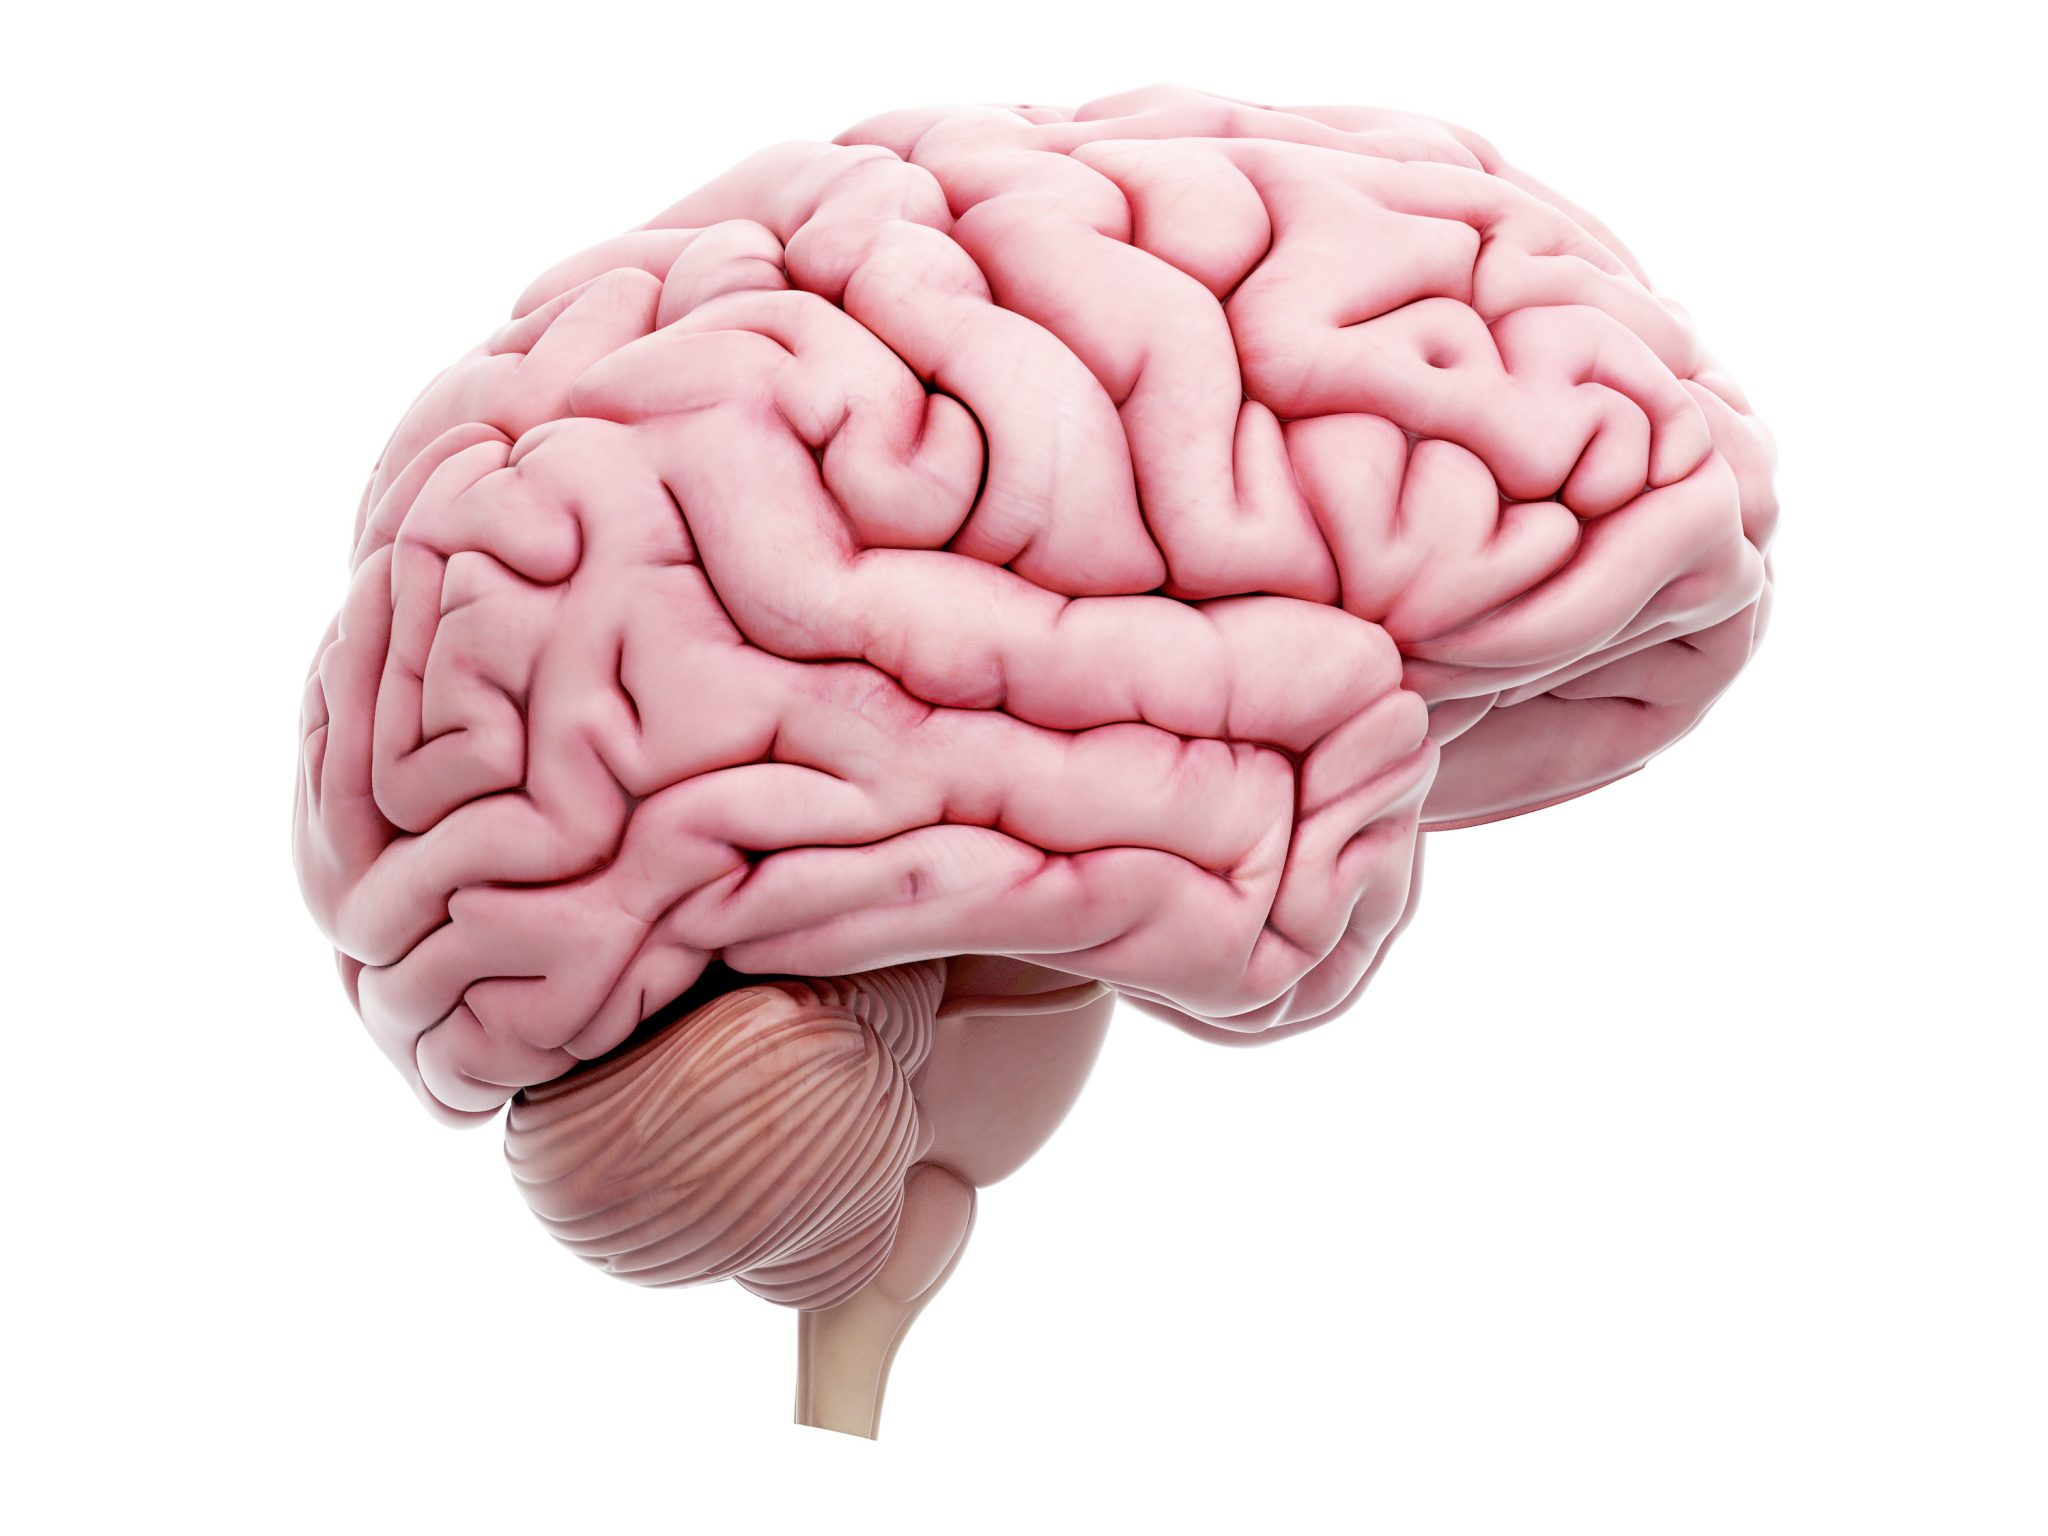 NeuroCOVID: NIH Launches Database to Track Neurological Symptoms of COVID-19